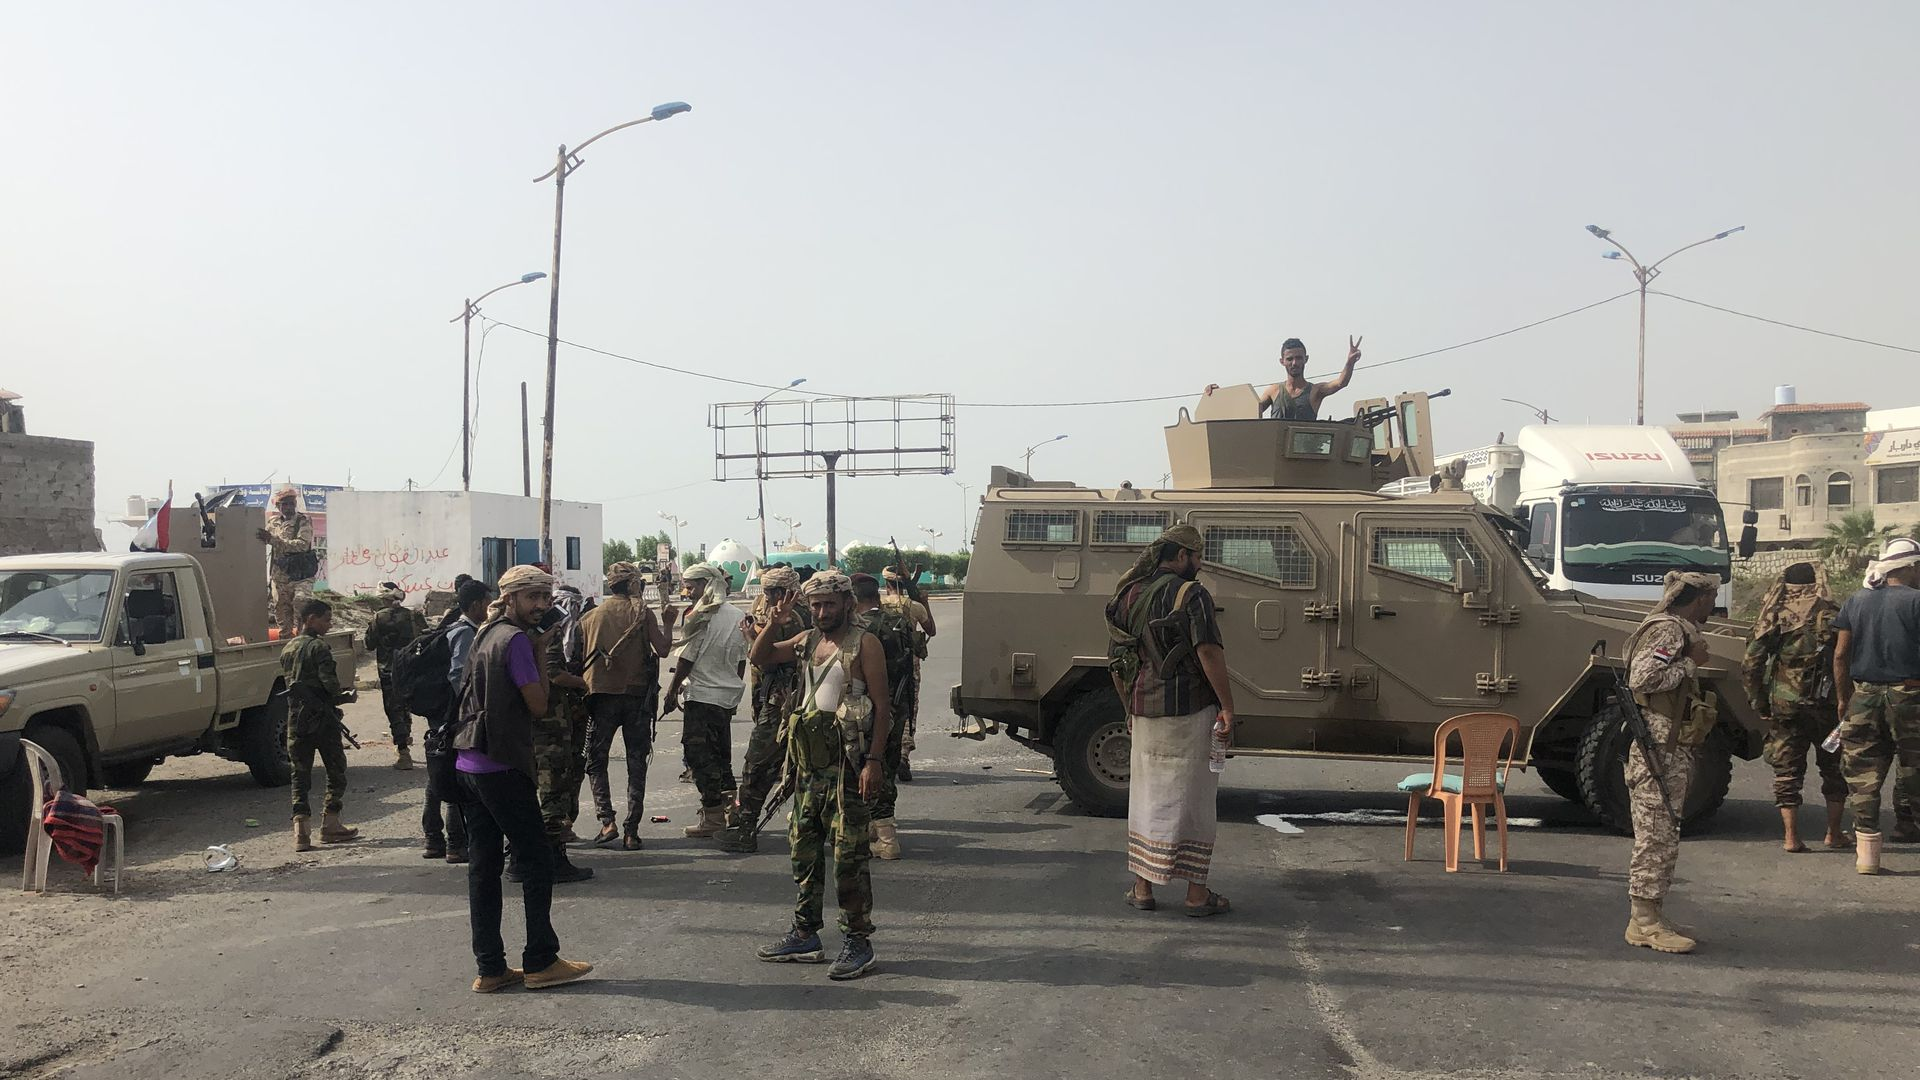 separatist security forces with military vehicles in the middle of a road